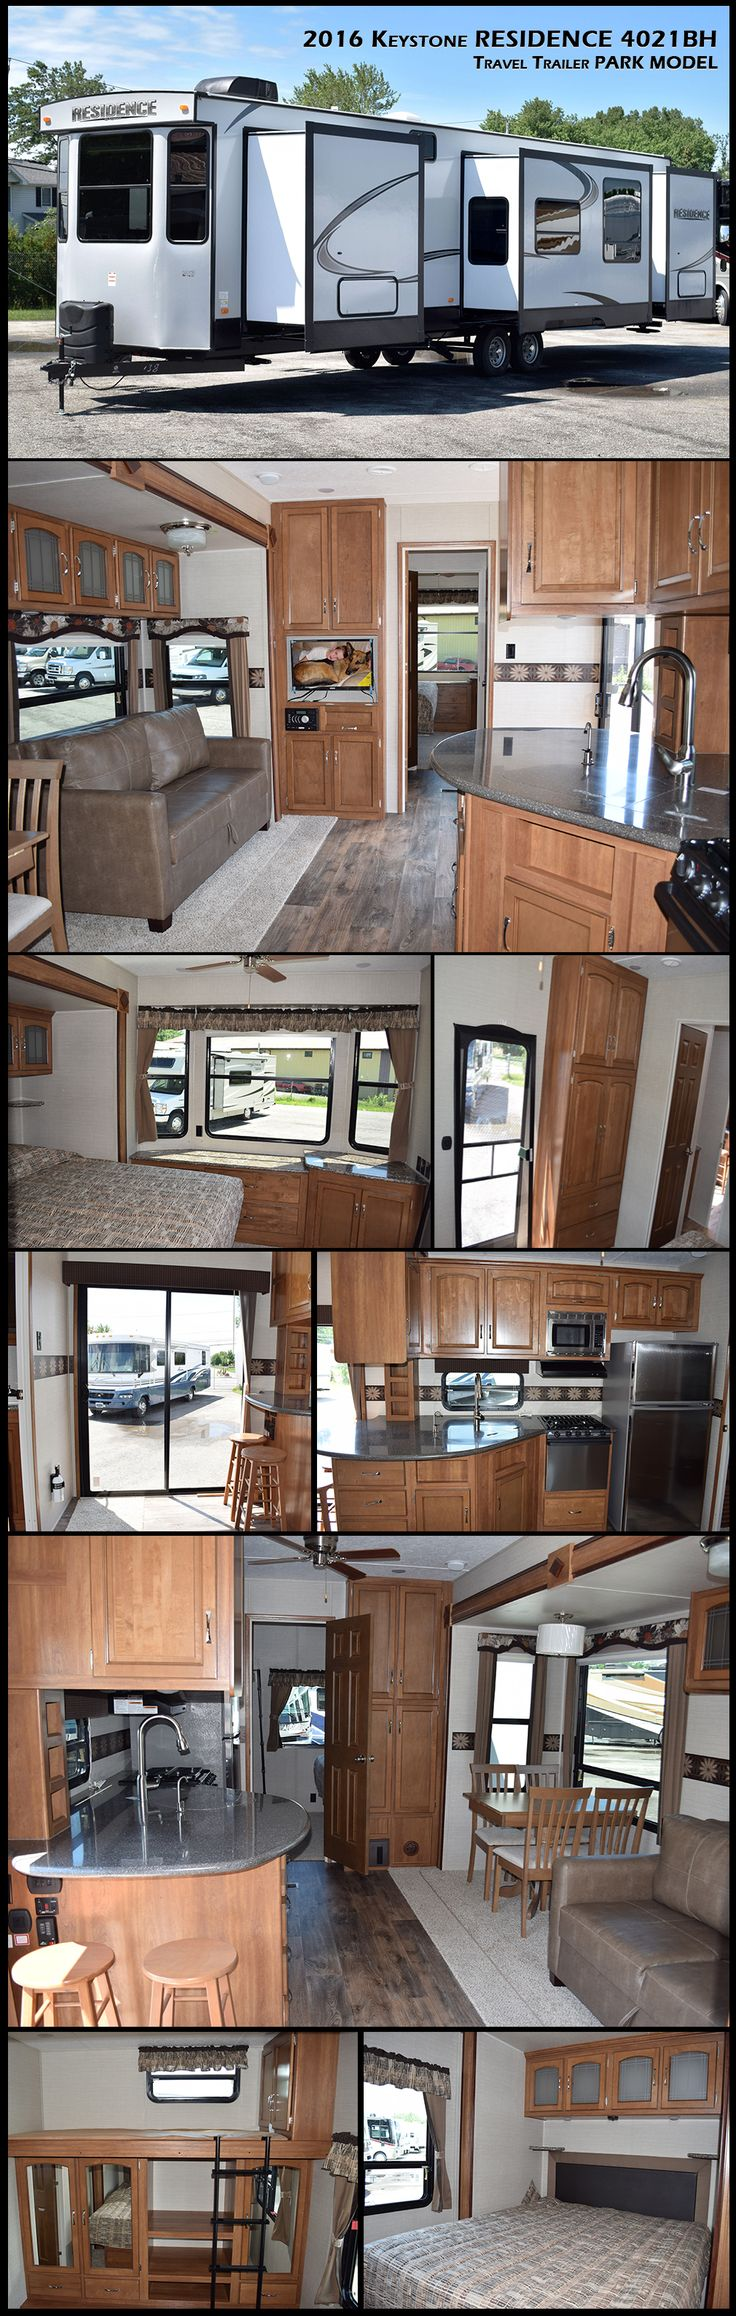 This 2016 KEYSTONE RESIDENCE 4021BH is the perfect Destination travel trailer home on wheels. It features triple slides, dual entry doors, a front and rear bedroom with one including a bunk, fiberglass exterior, and so much more! The front bedroom features a comfy pillow top king size bed, large wardrobe, LCD TV, and dresser. The bedroom also has its own private entry door for added convenience.